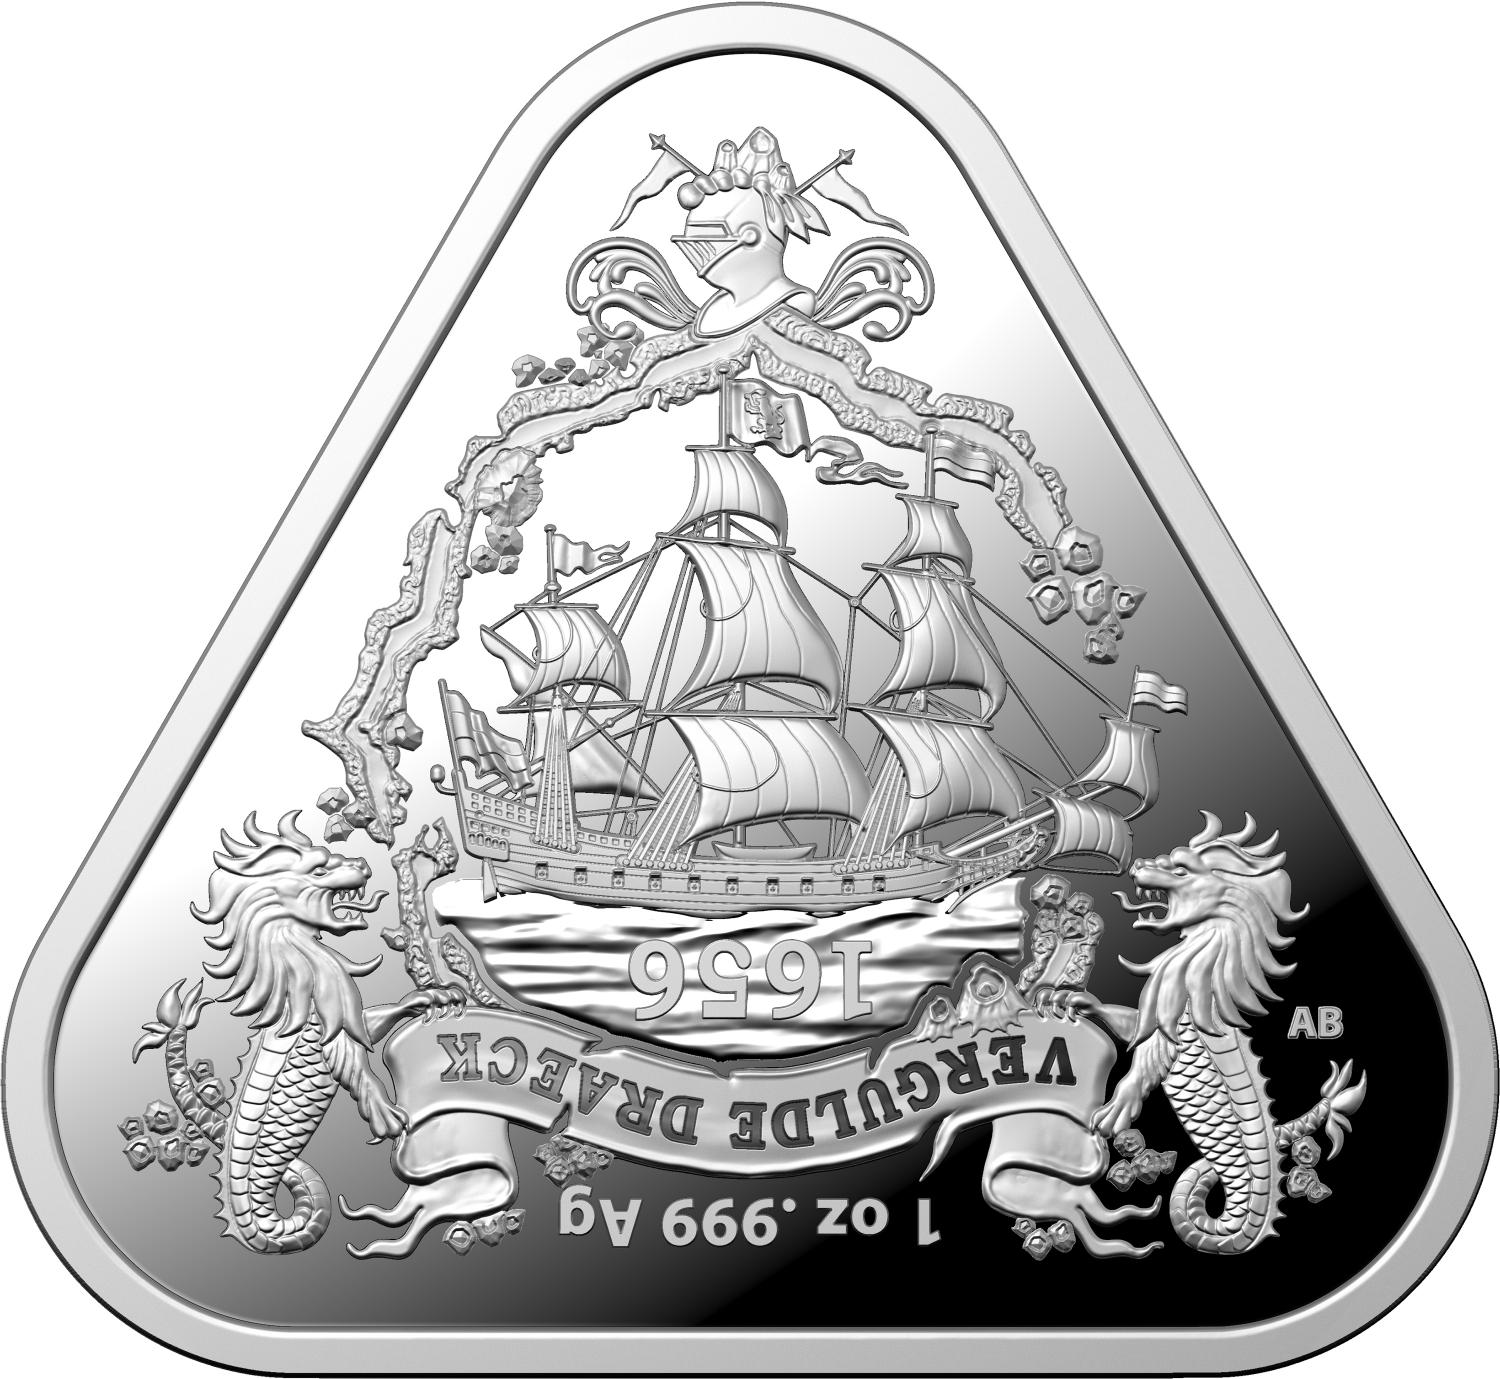 Thumbnail for 2020 One Dollar Silver Triangle Coin in Capsule - Vergulde Draeck